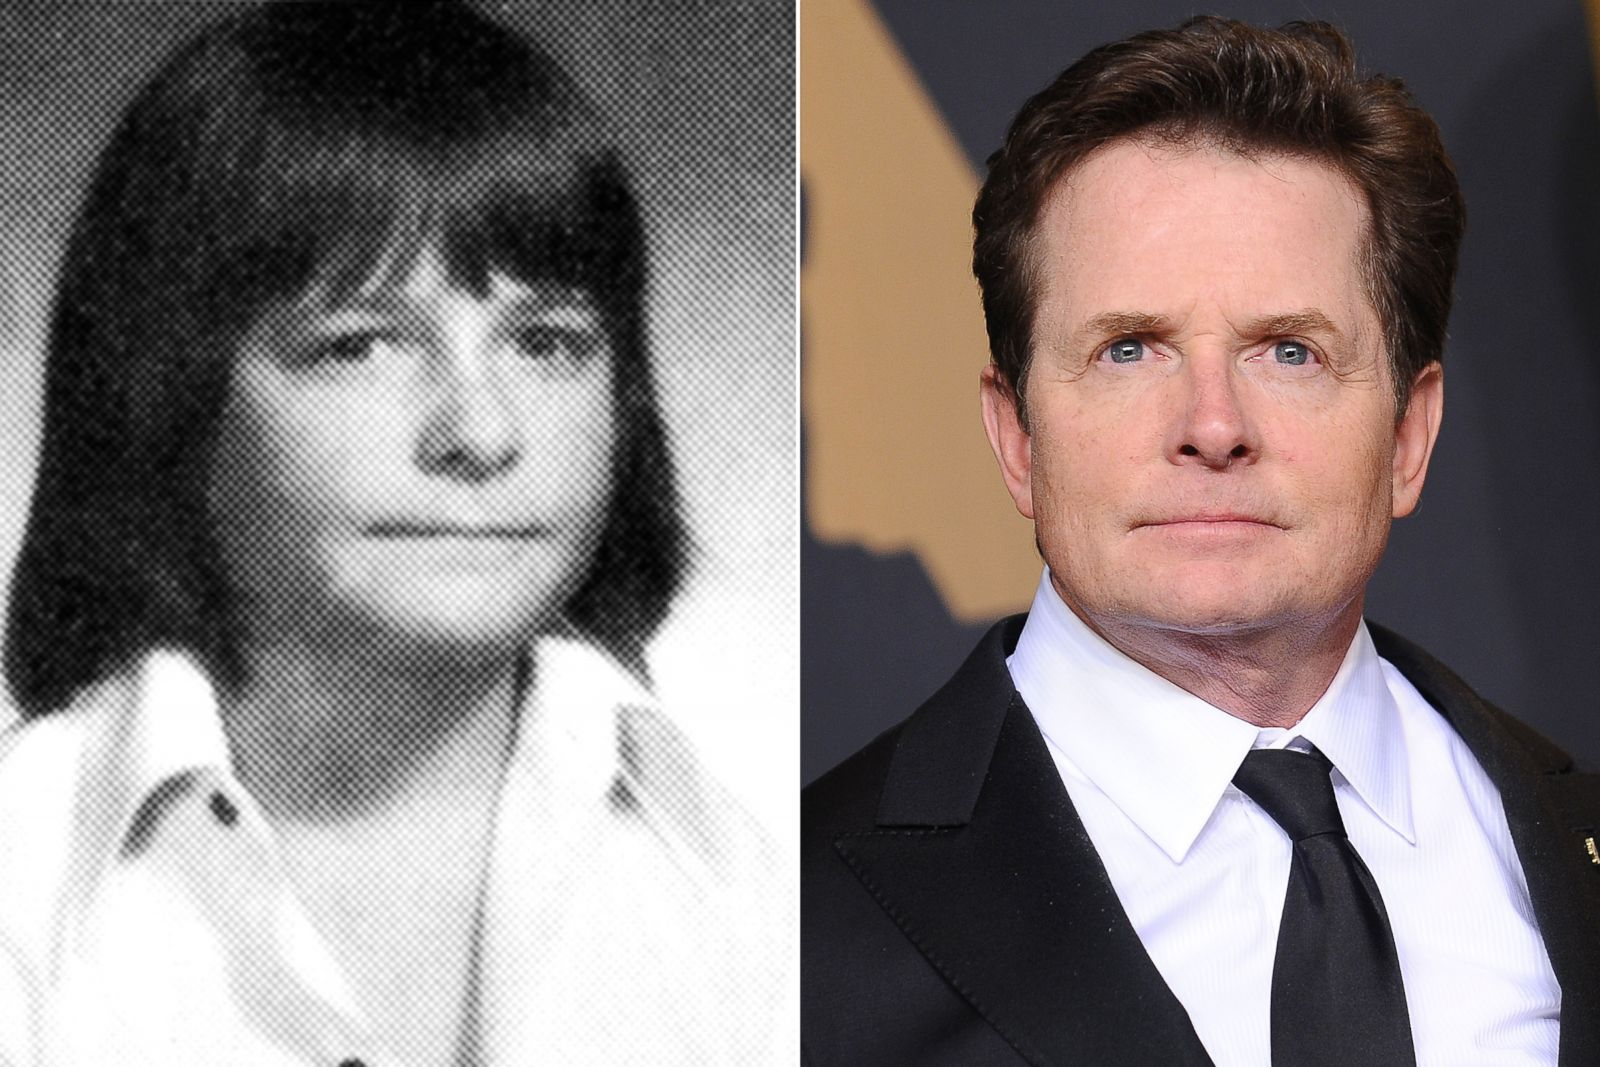 ' ' from the web at 'https://s.abcnews.com/images/Entertainment/HT-GTY-Michael-J-Fox-ml-170609_3x2_1600.jpg'